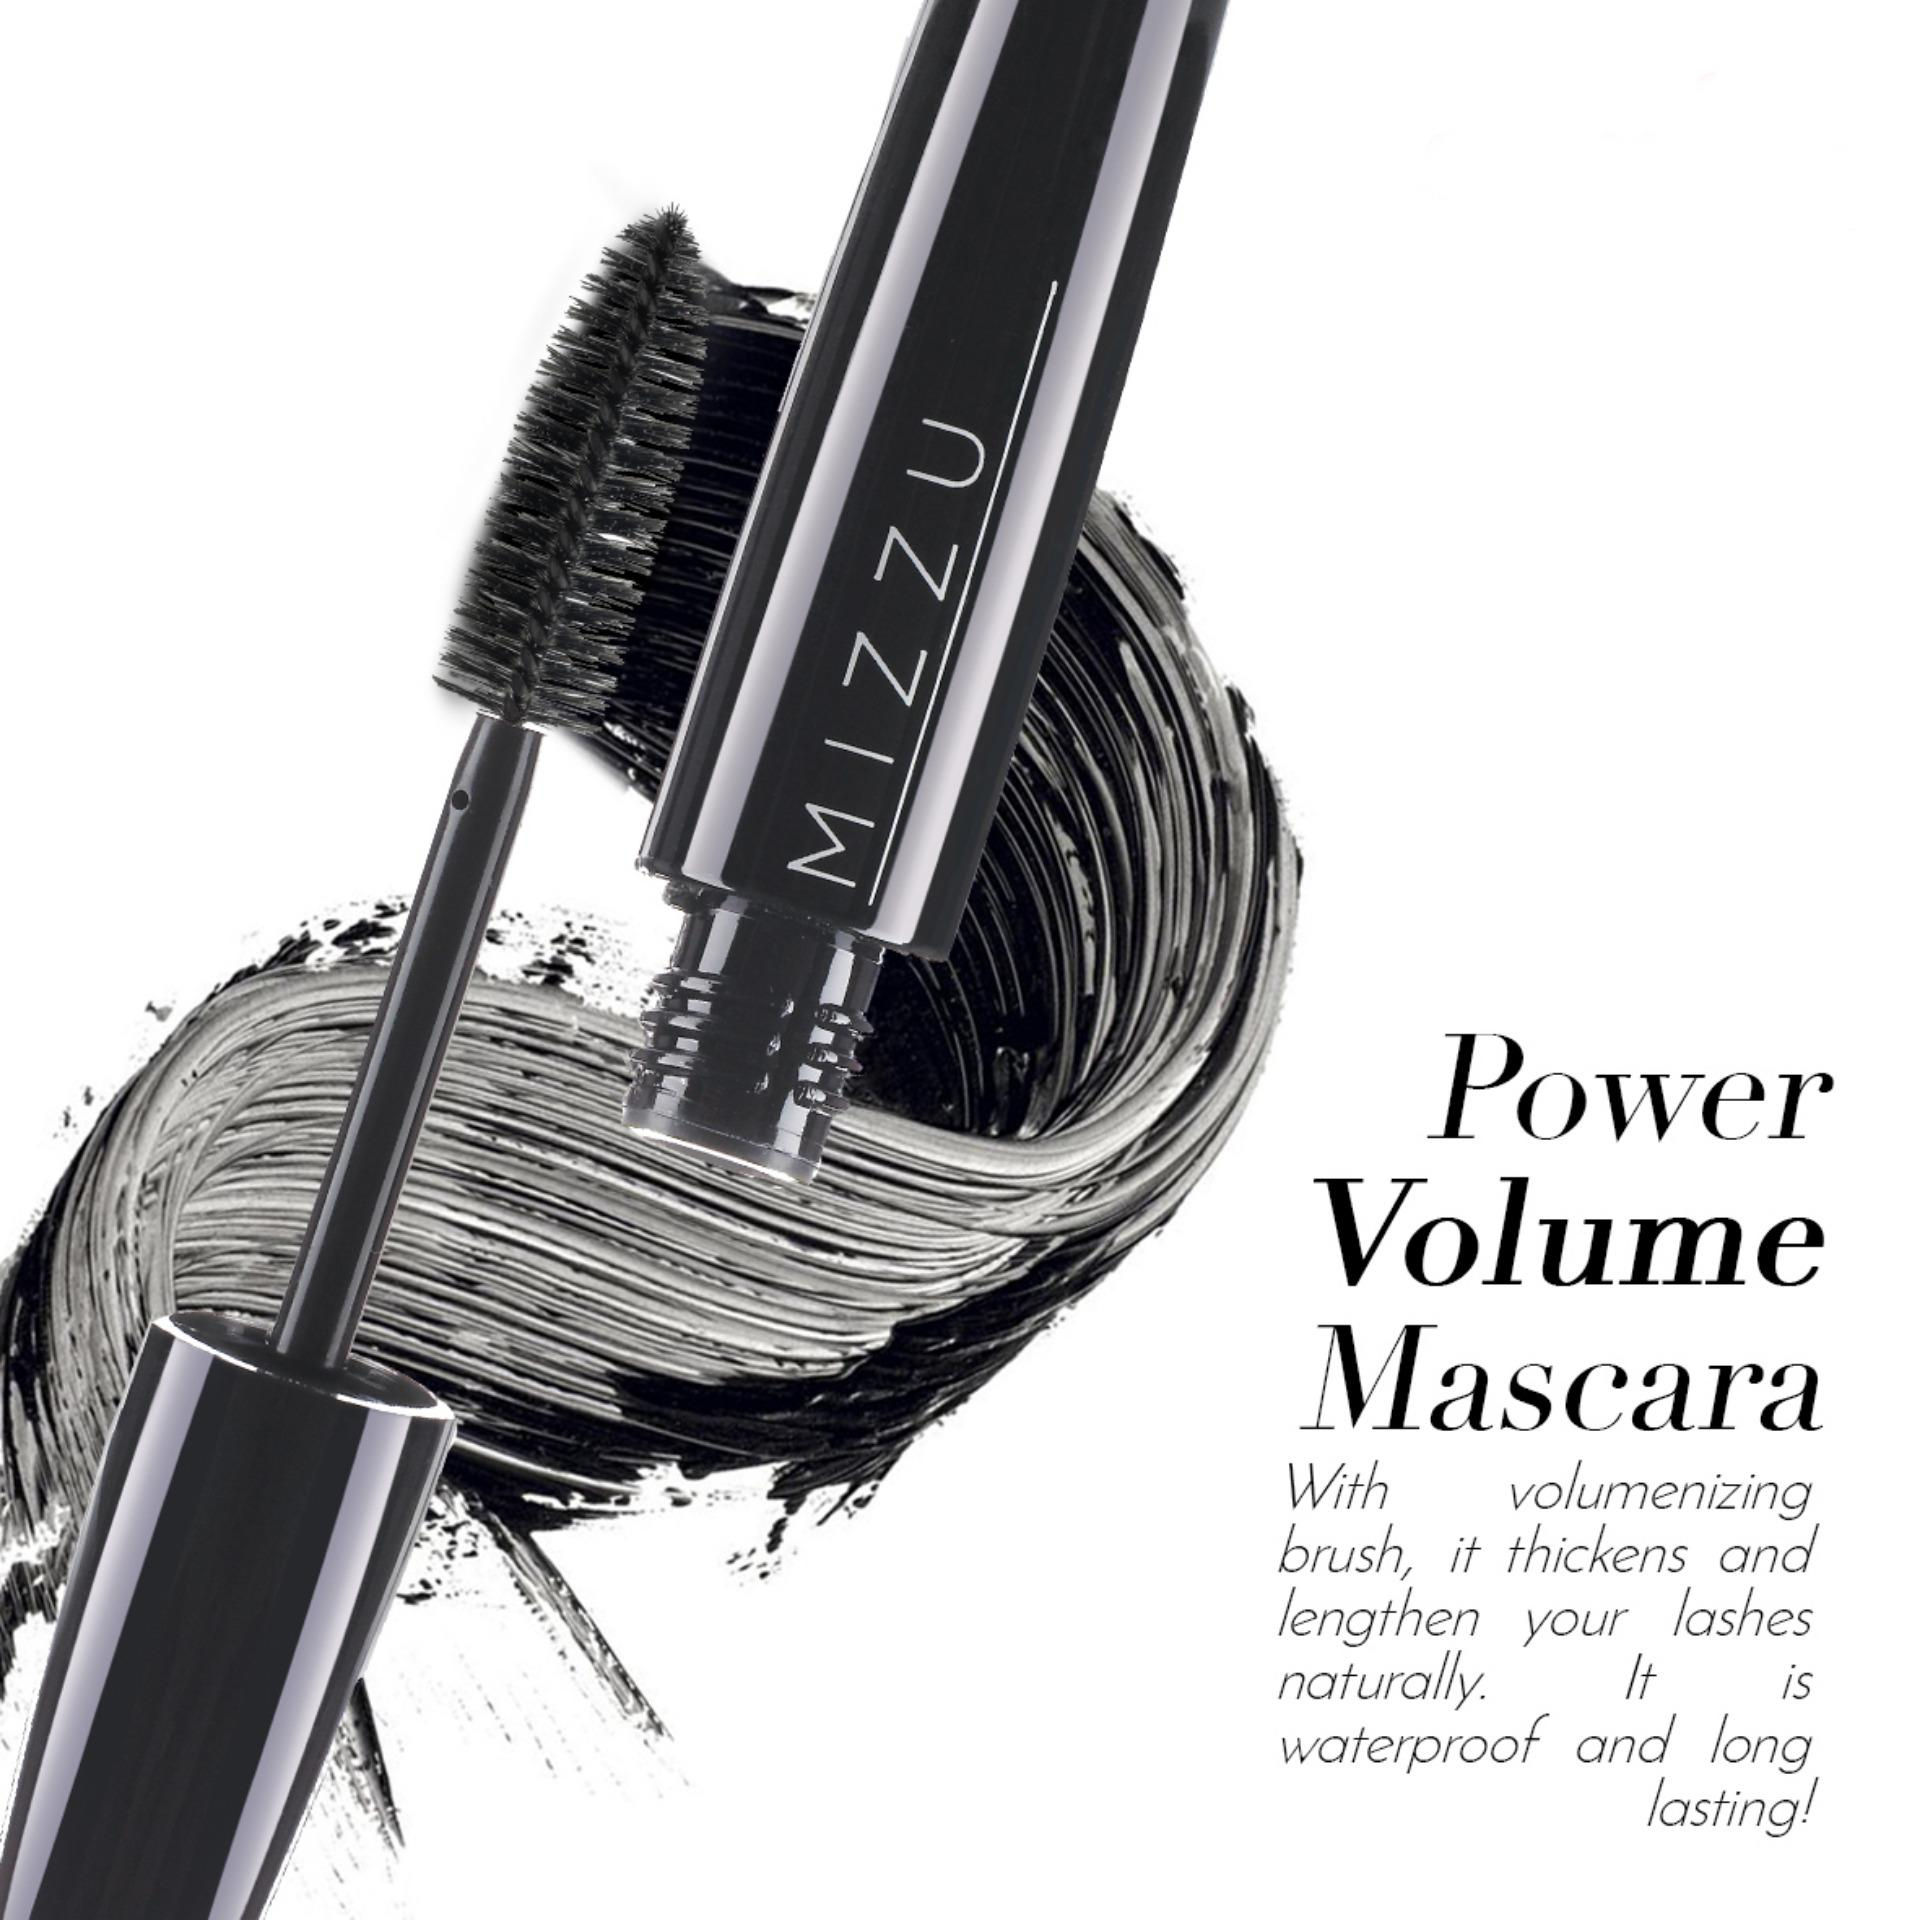 Kehebatan Mizzu True Dimensional Lash Black Waterproof Mascara Dan Inez Lengthening Maskara Power Volume Warna Pigmented Menebalkan Melentikkan